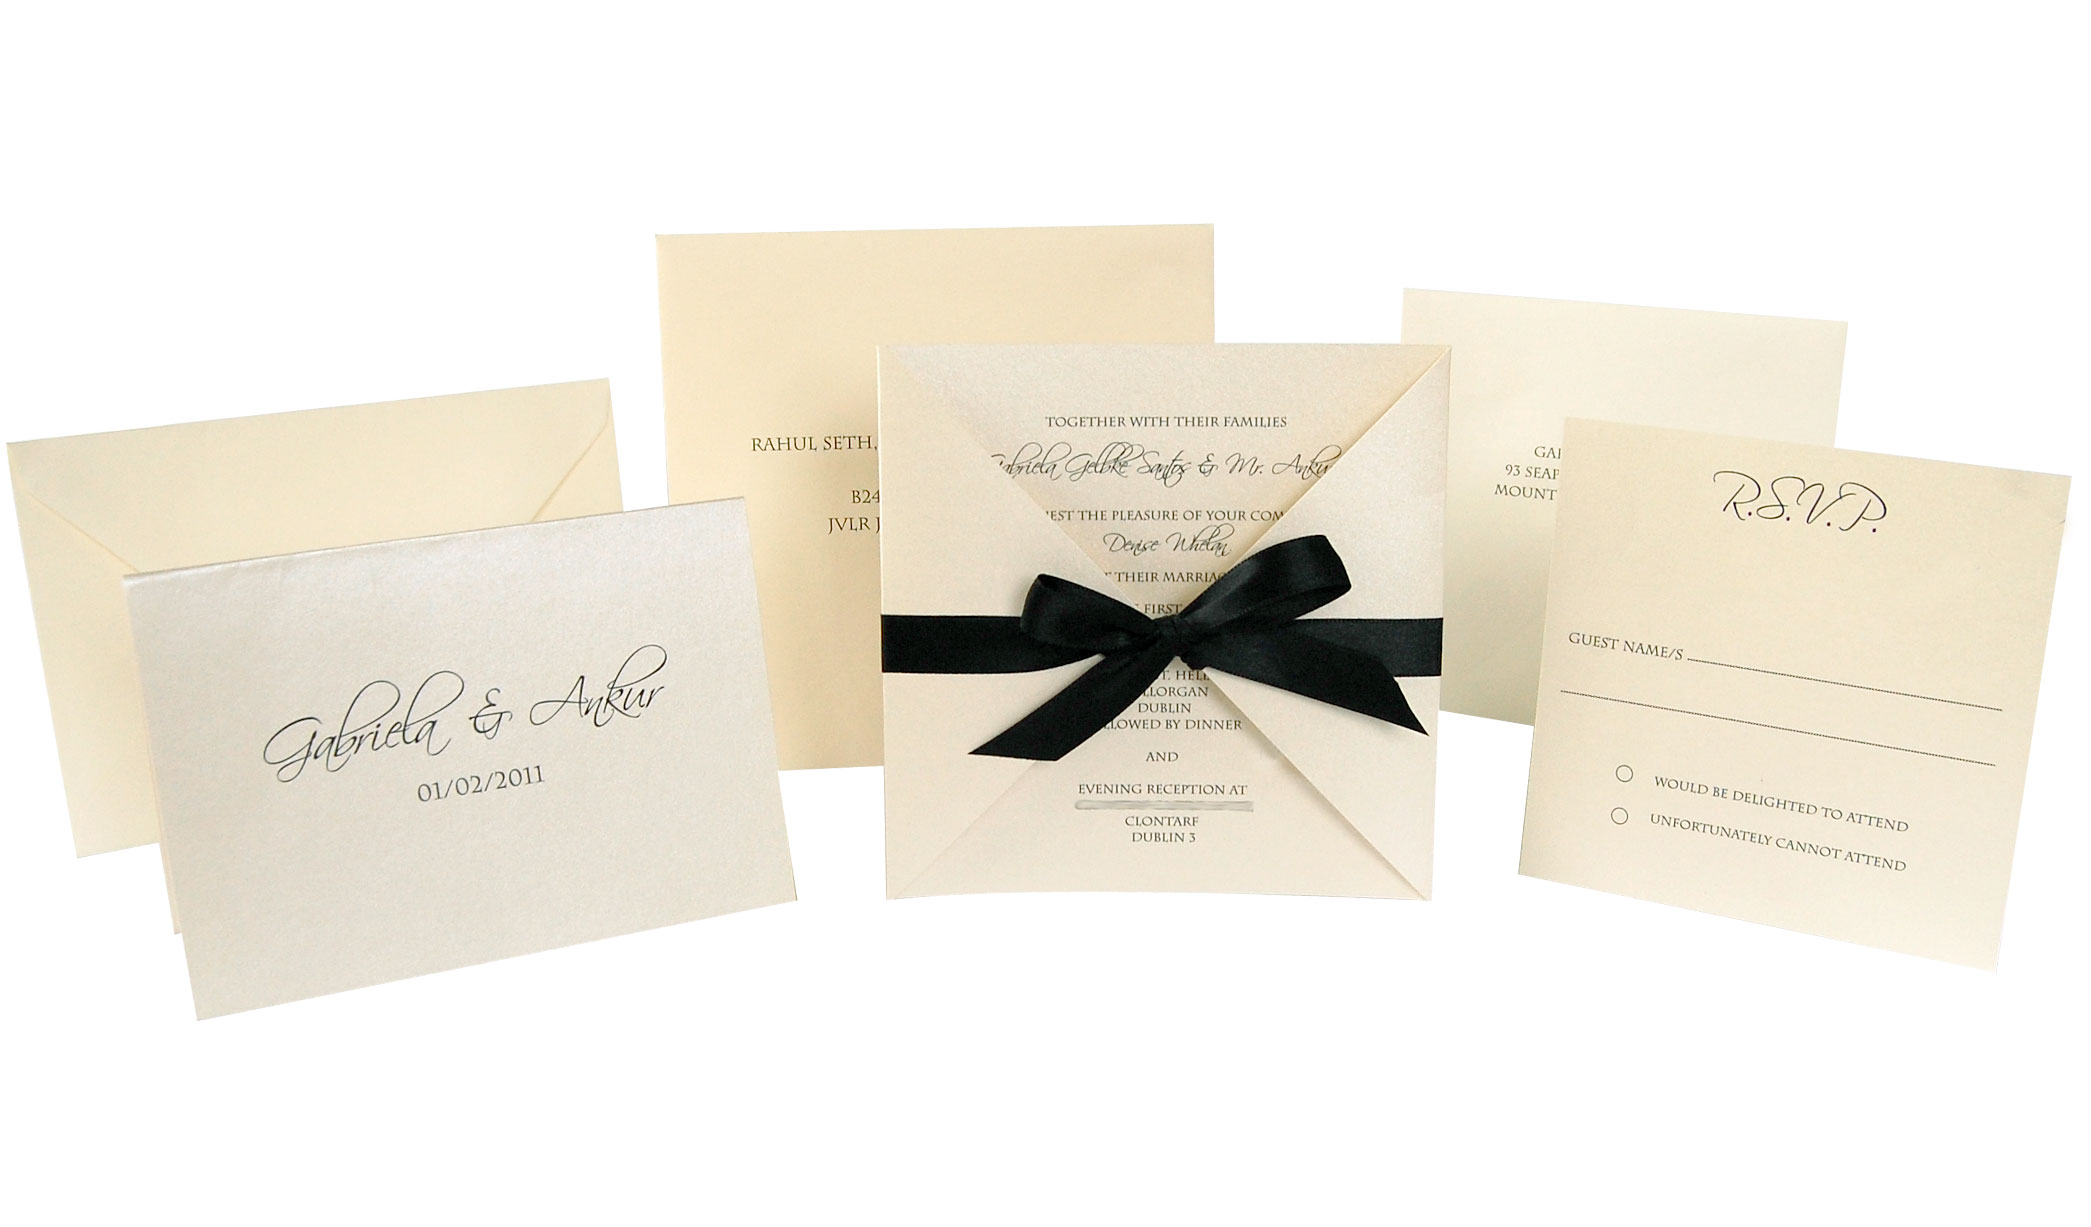 where to write guest name on wedding invitation - 28 images - how to ...